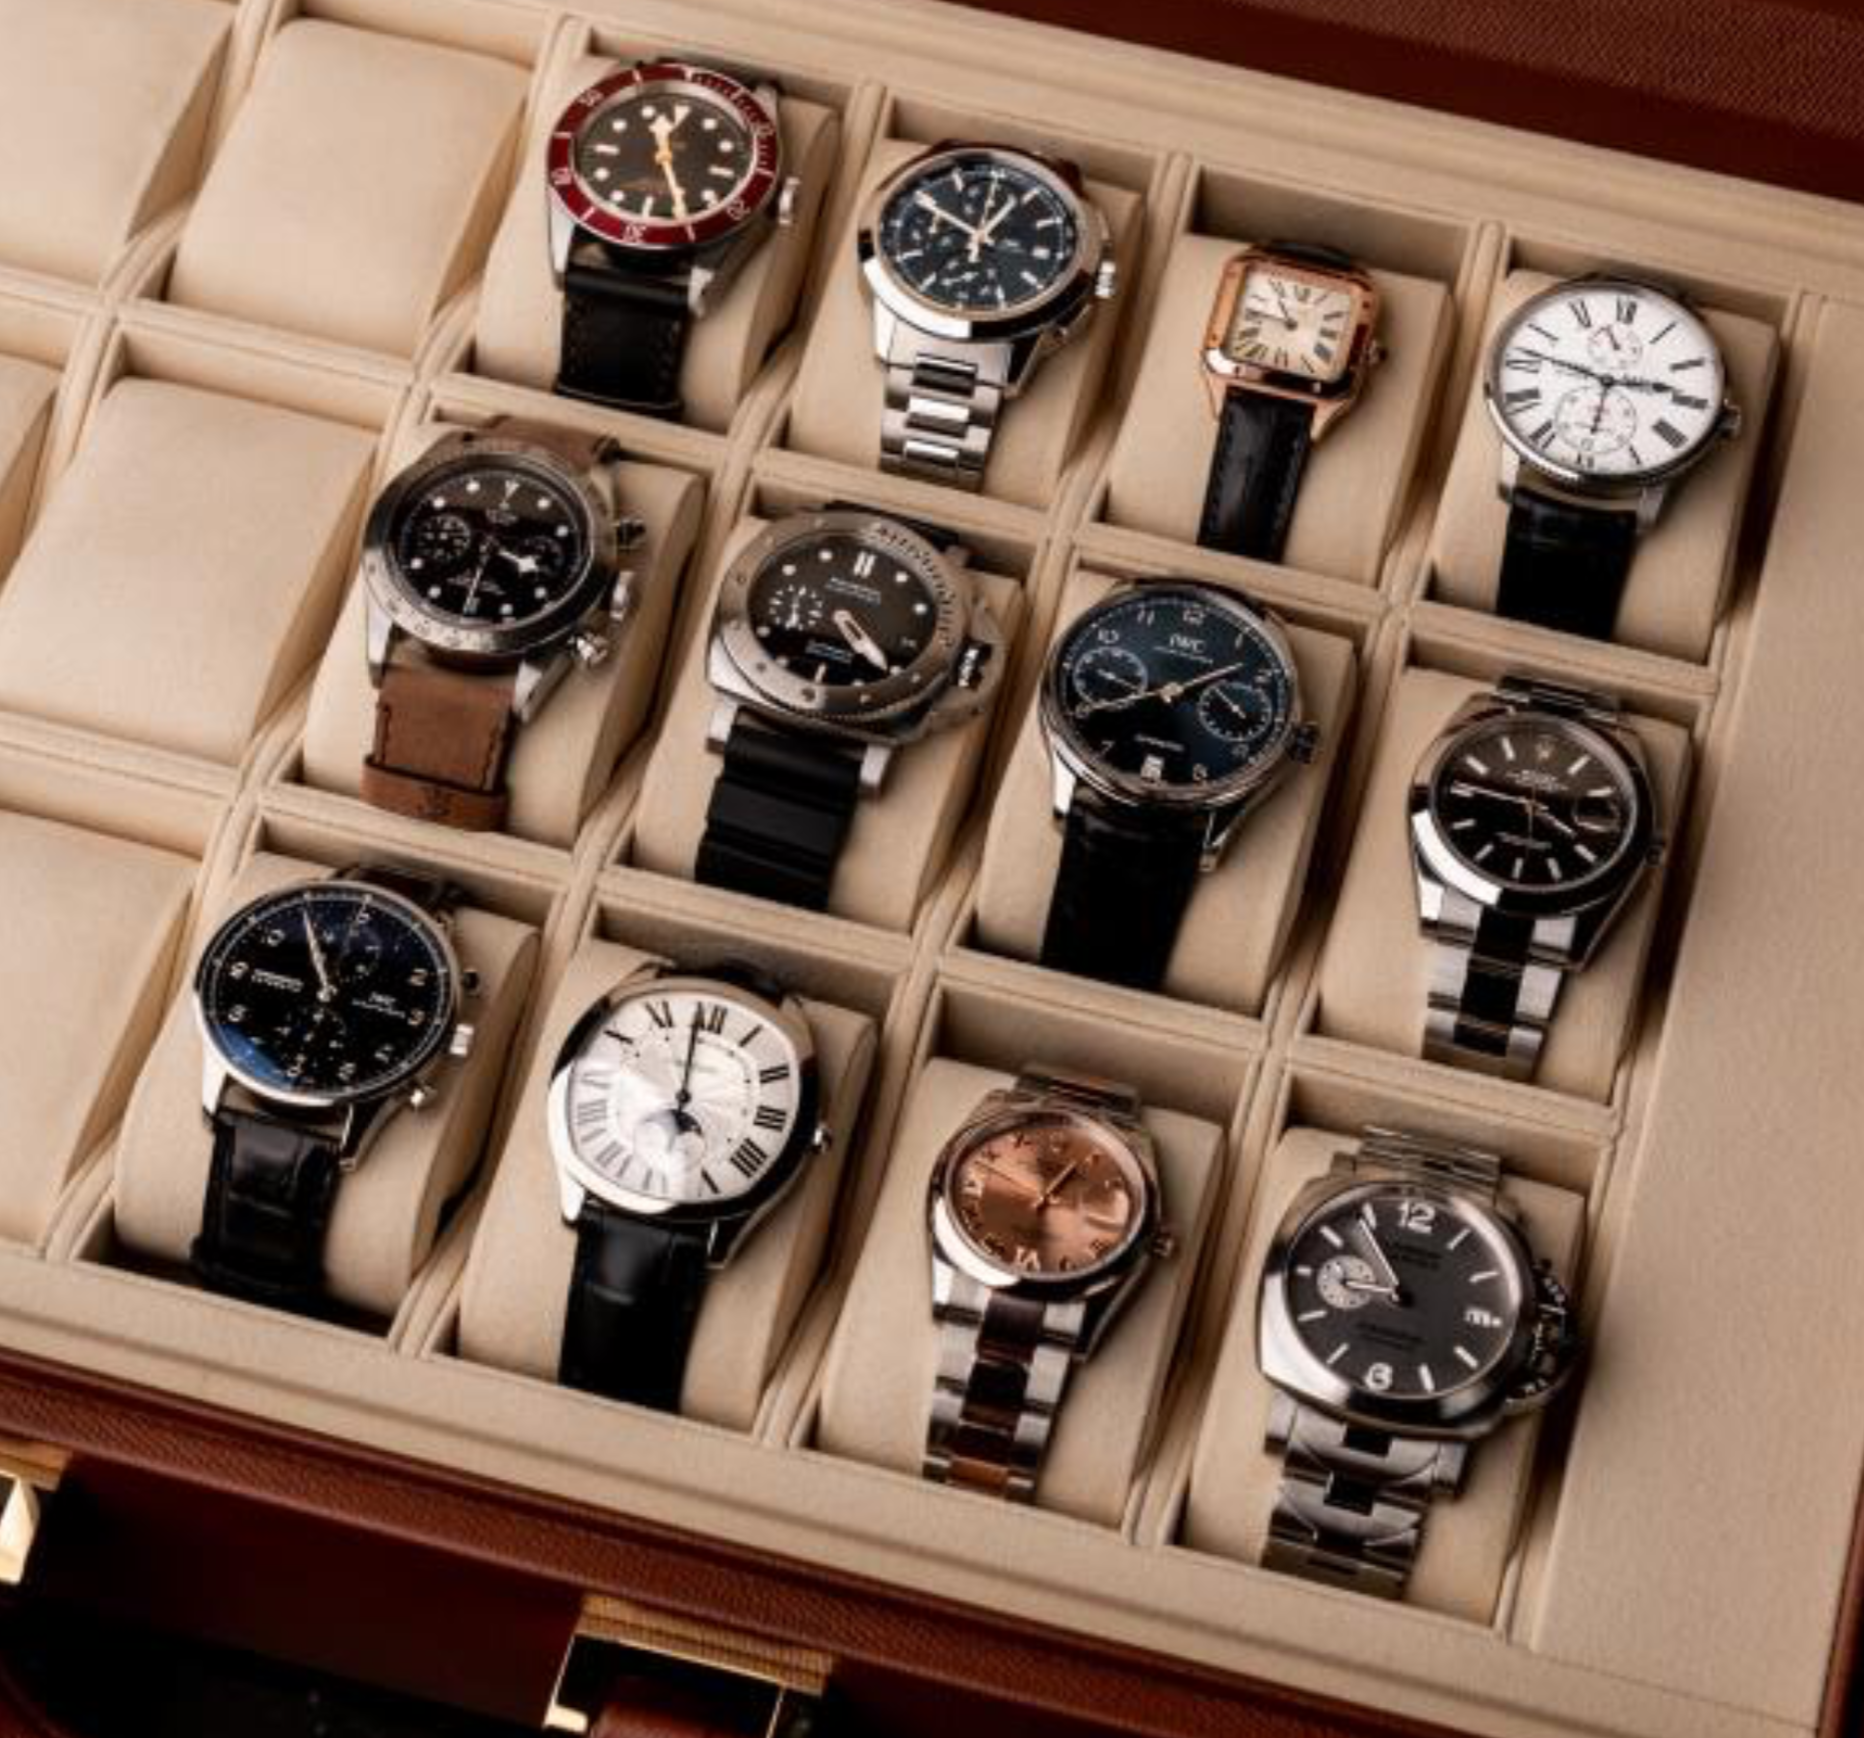 Would you pay a retailer 100K per year to choose 12 watches for you?